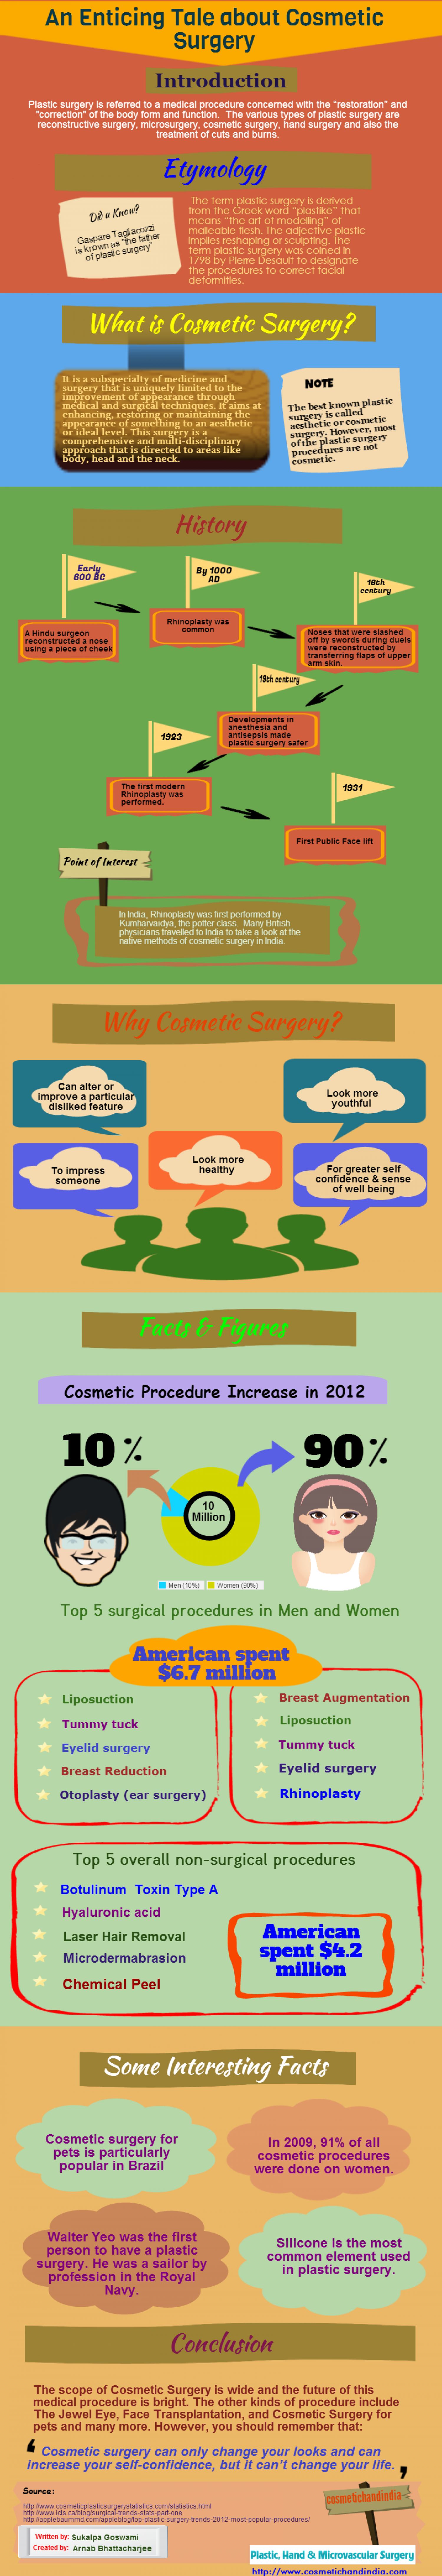 An Enticing Tale about Cosmetic Surgery Infographic